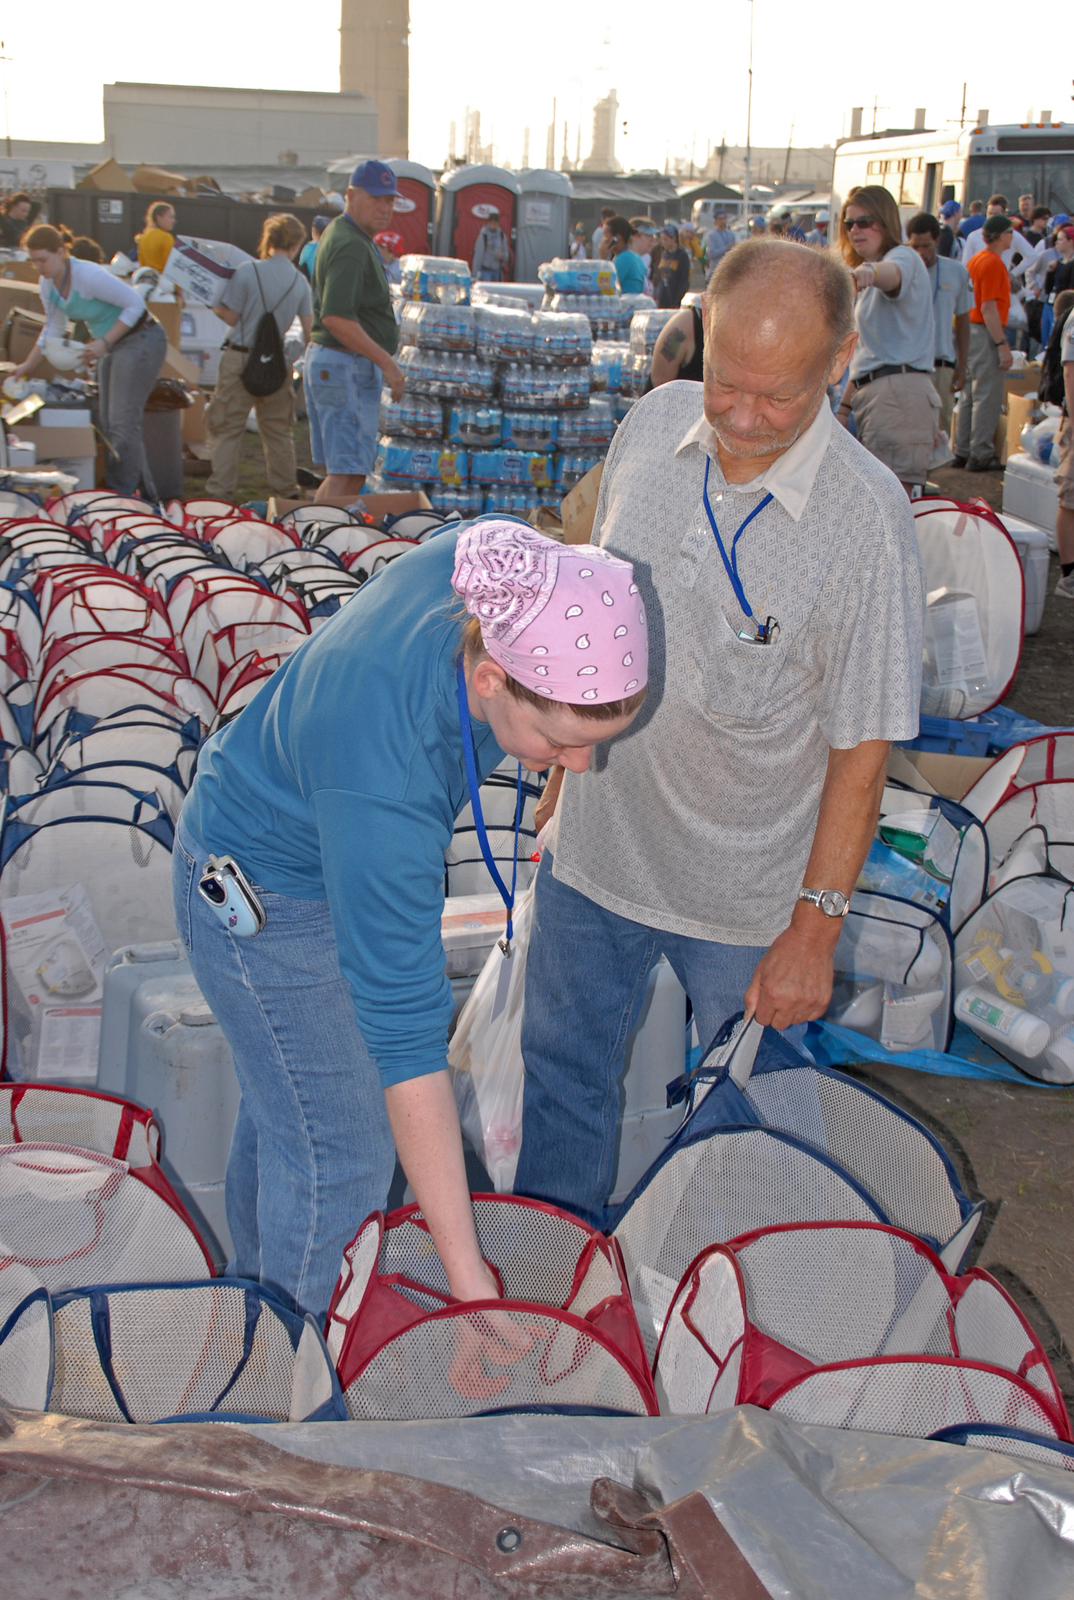 """[Hurricane Katrina] New Orleans, LA, 3-13-06 -- Volunteer Team Leader Earl Romans of """"Earls Alaskans"""" helps volunteer Team Leader Casey Schoen from the University of Alaska at Fairbanks and Rotaract pick up her protective equipment at a FEMA Base Camp.  College students from around the country are in New Orleans helping with clean up during spring break. FEMA is housing as many of the College Student volunteers as possible in four base camps in and around New Orleans.  These base camps are being expanded to accommodate more volunteers.  Marvin Nauman/FEMA photo"""